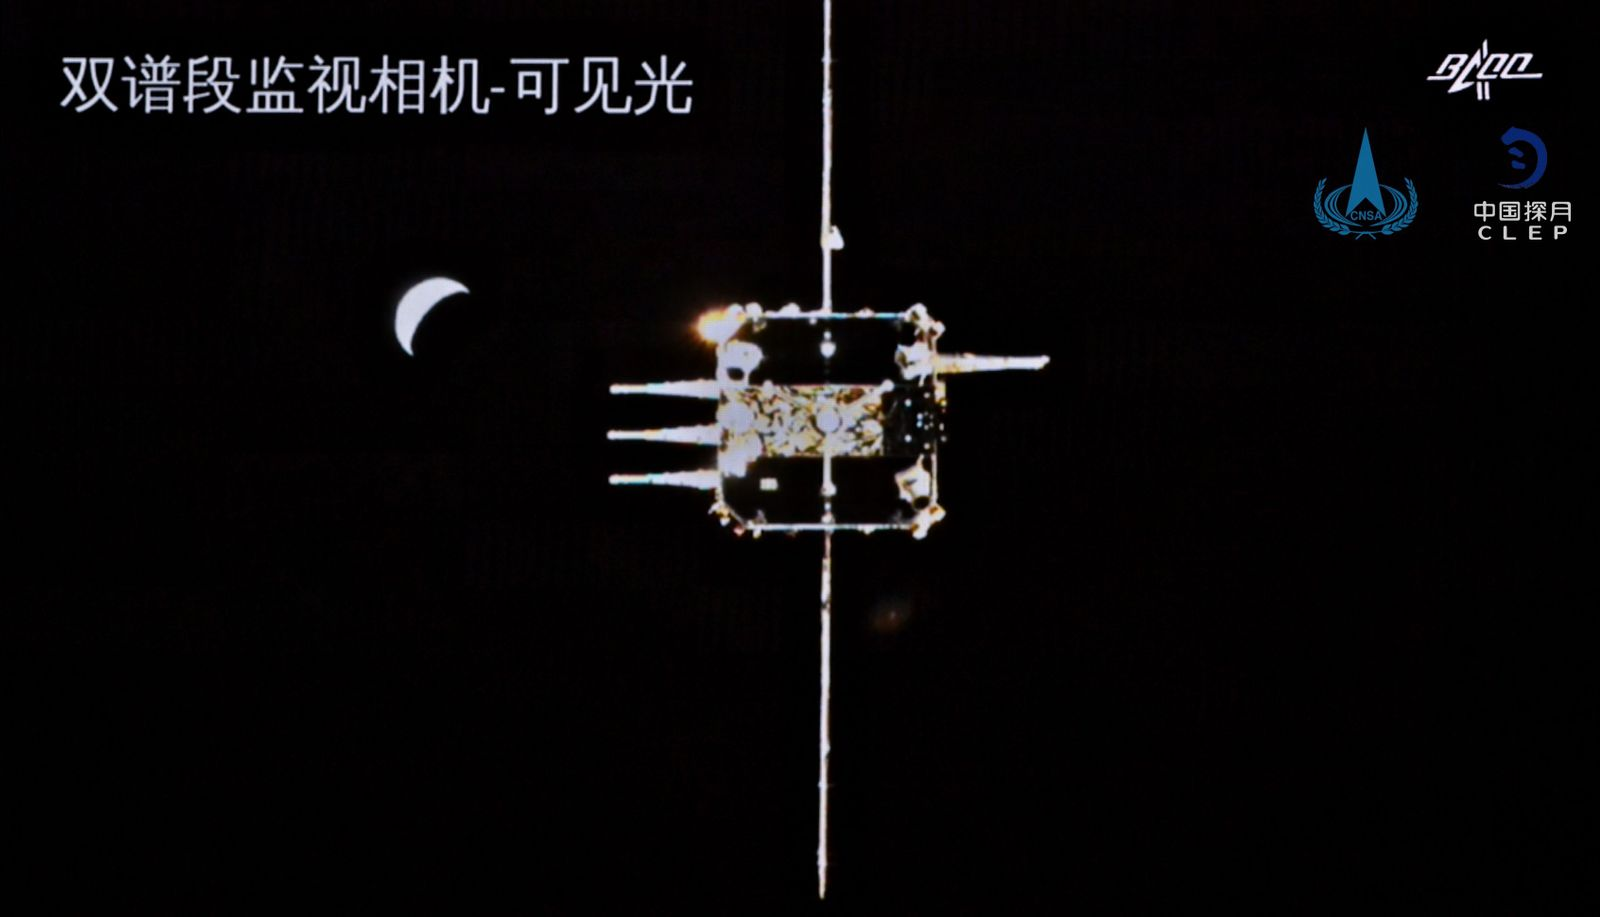 China's sample-return Moon mission rendezvous docking, Zzz - 06 Dec 2020